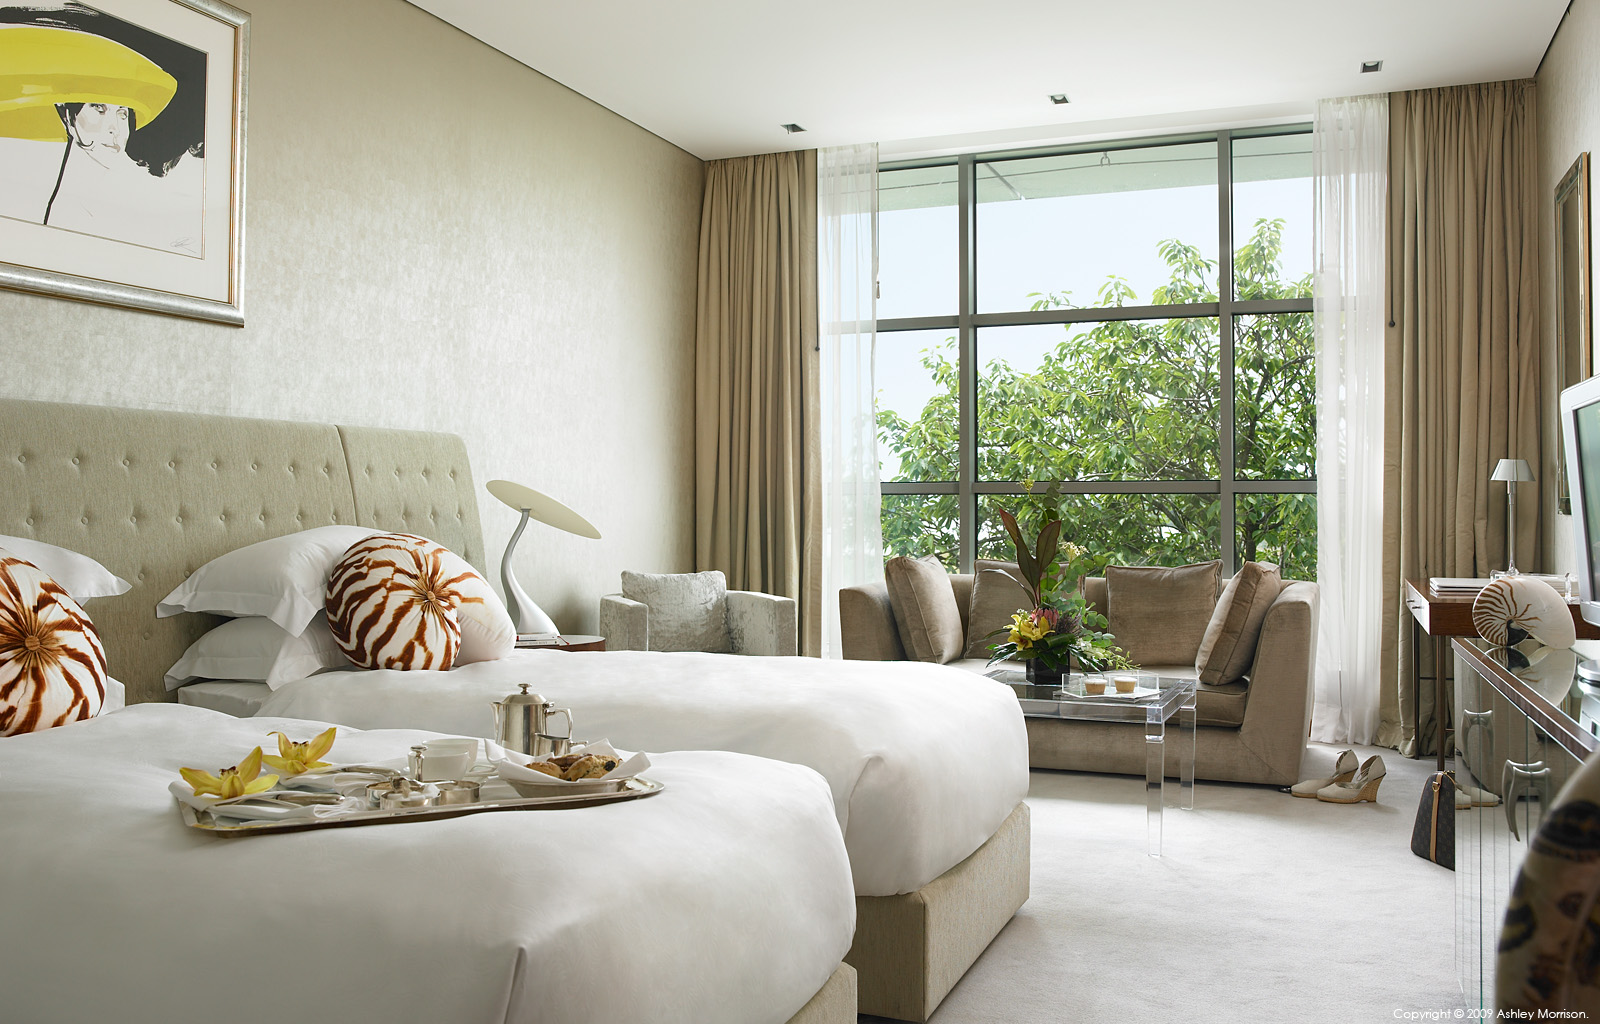 Deluxe twin bedroom suite at the g Hotel in Galway by Ashley Morrison and Marie McMillen.